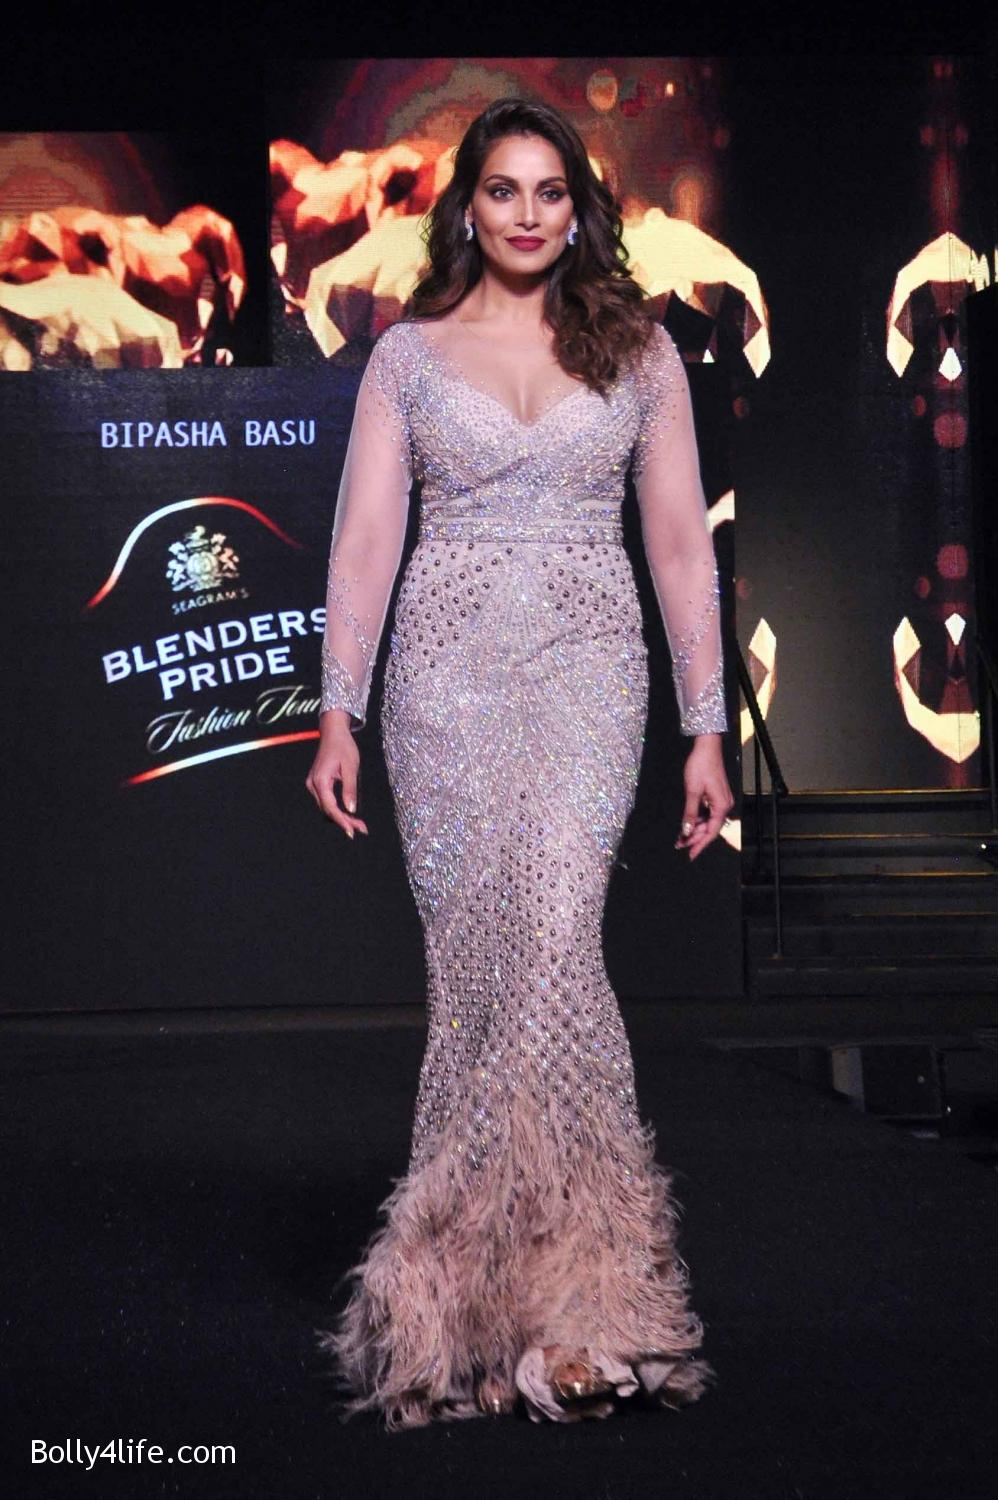 Bipasha-Basu-walks-the-ramp-during-Blenders-Pride-Fashion-Tour-2016-in-Kolkata-3.jpg